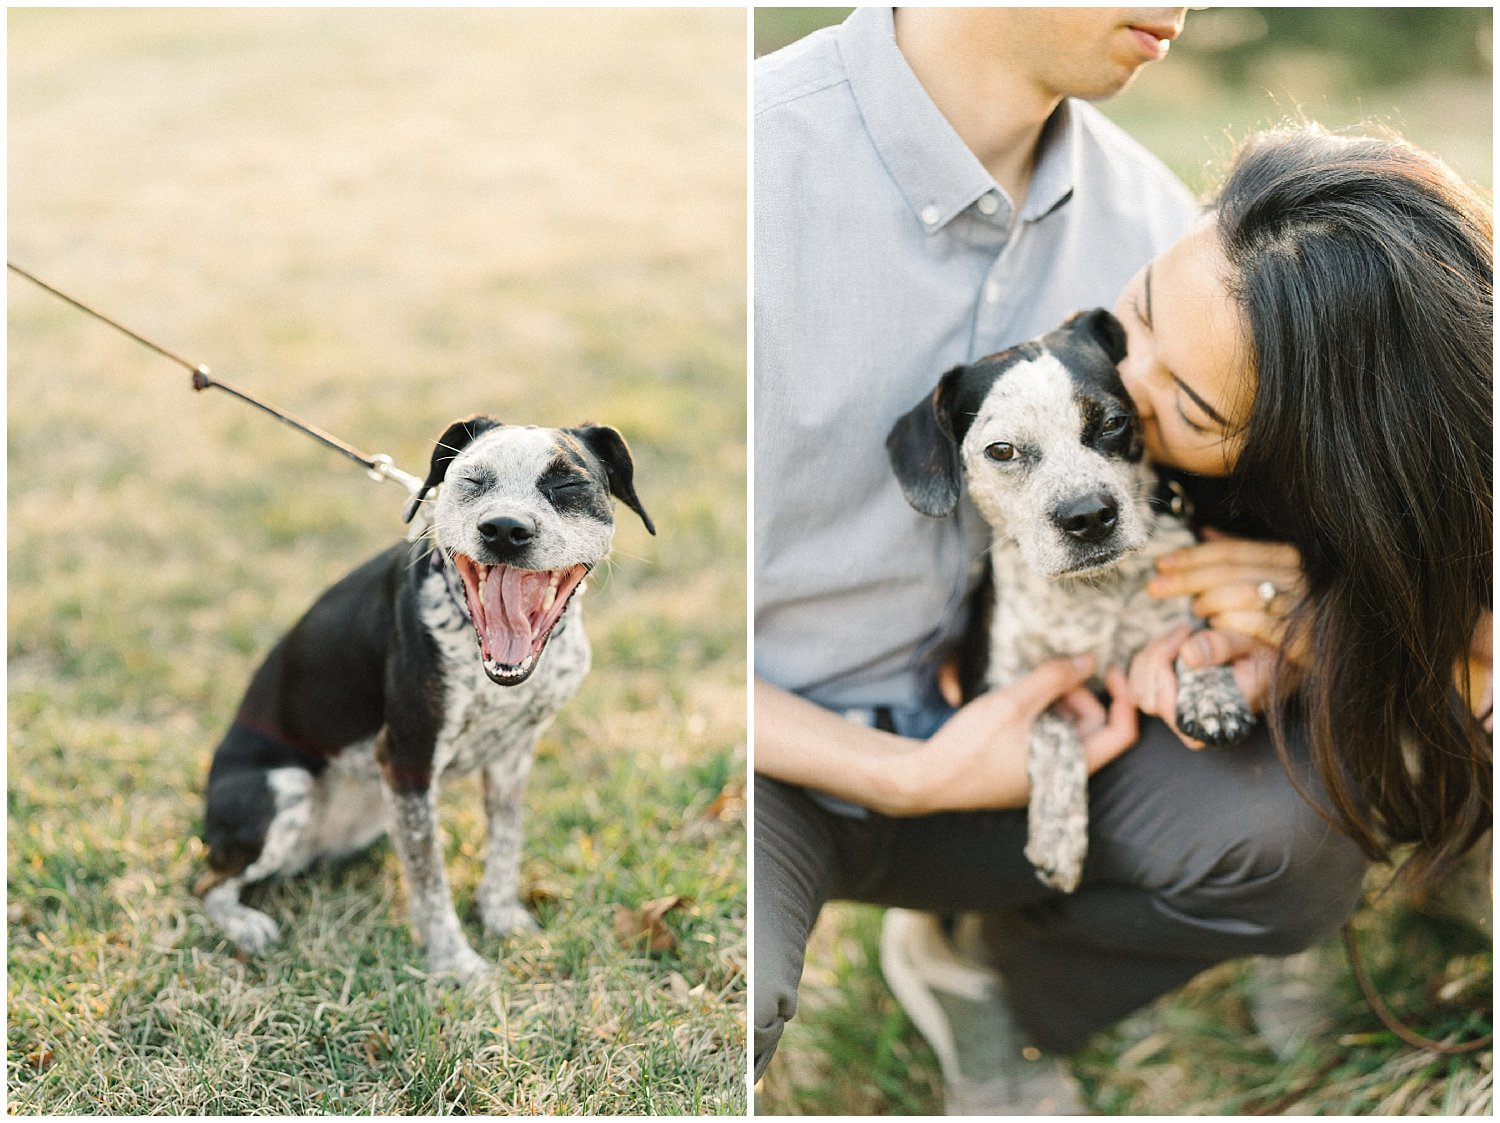 Incorporating dogs into engagement session